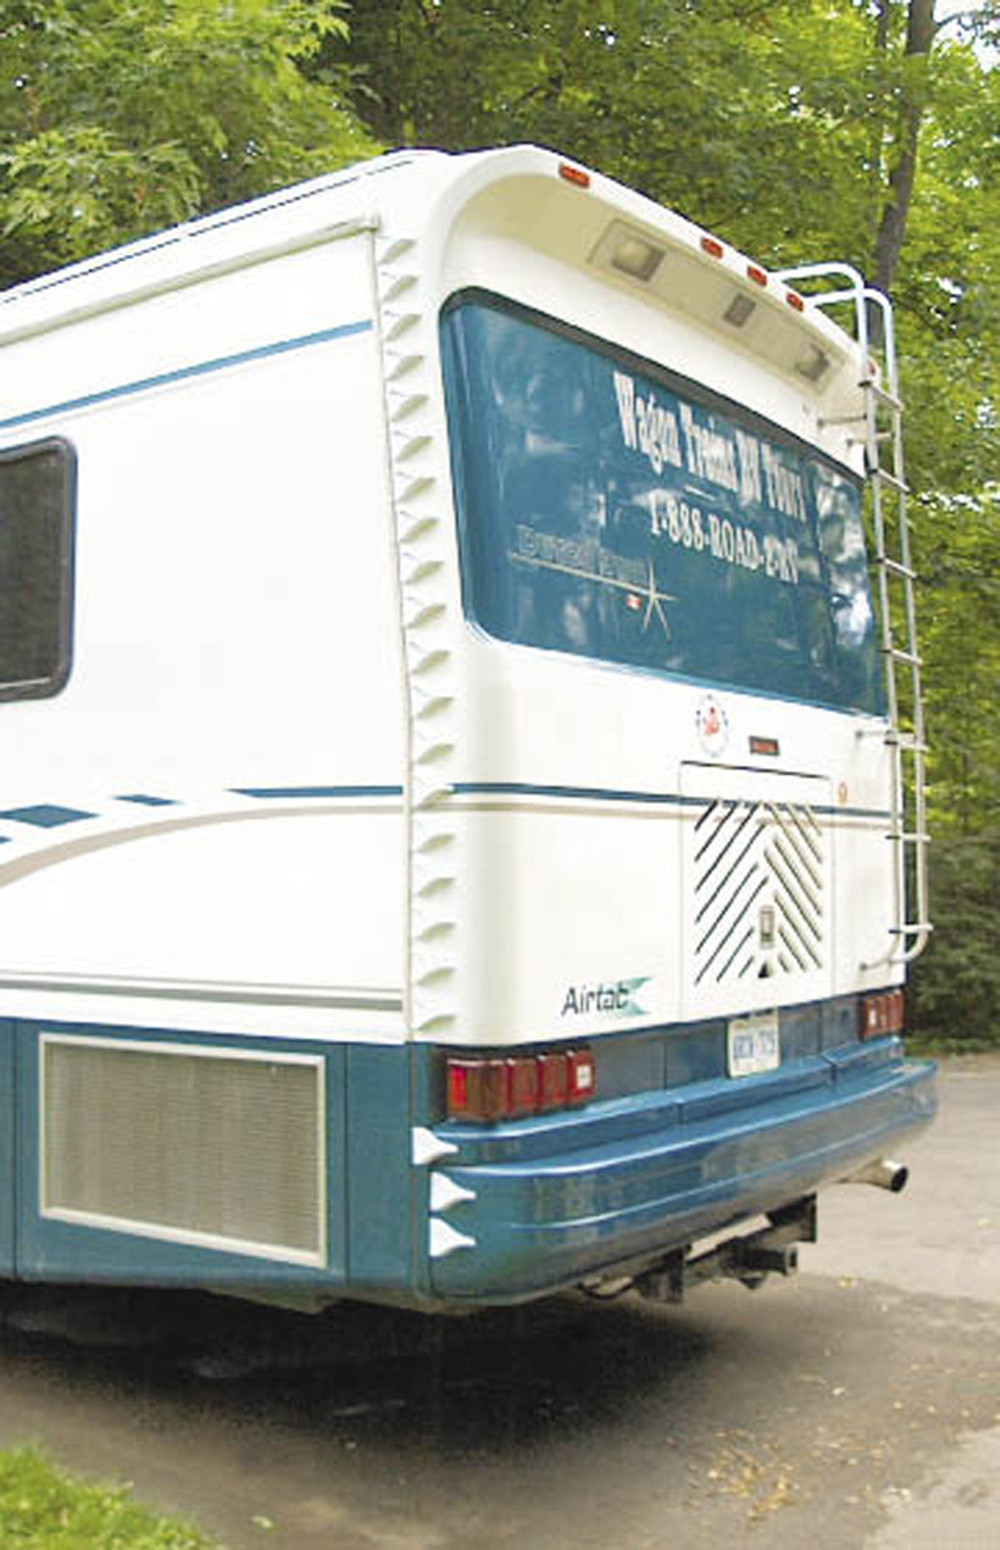 Airtabs on the back of a recreational vehicle